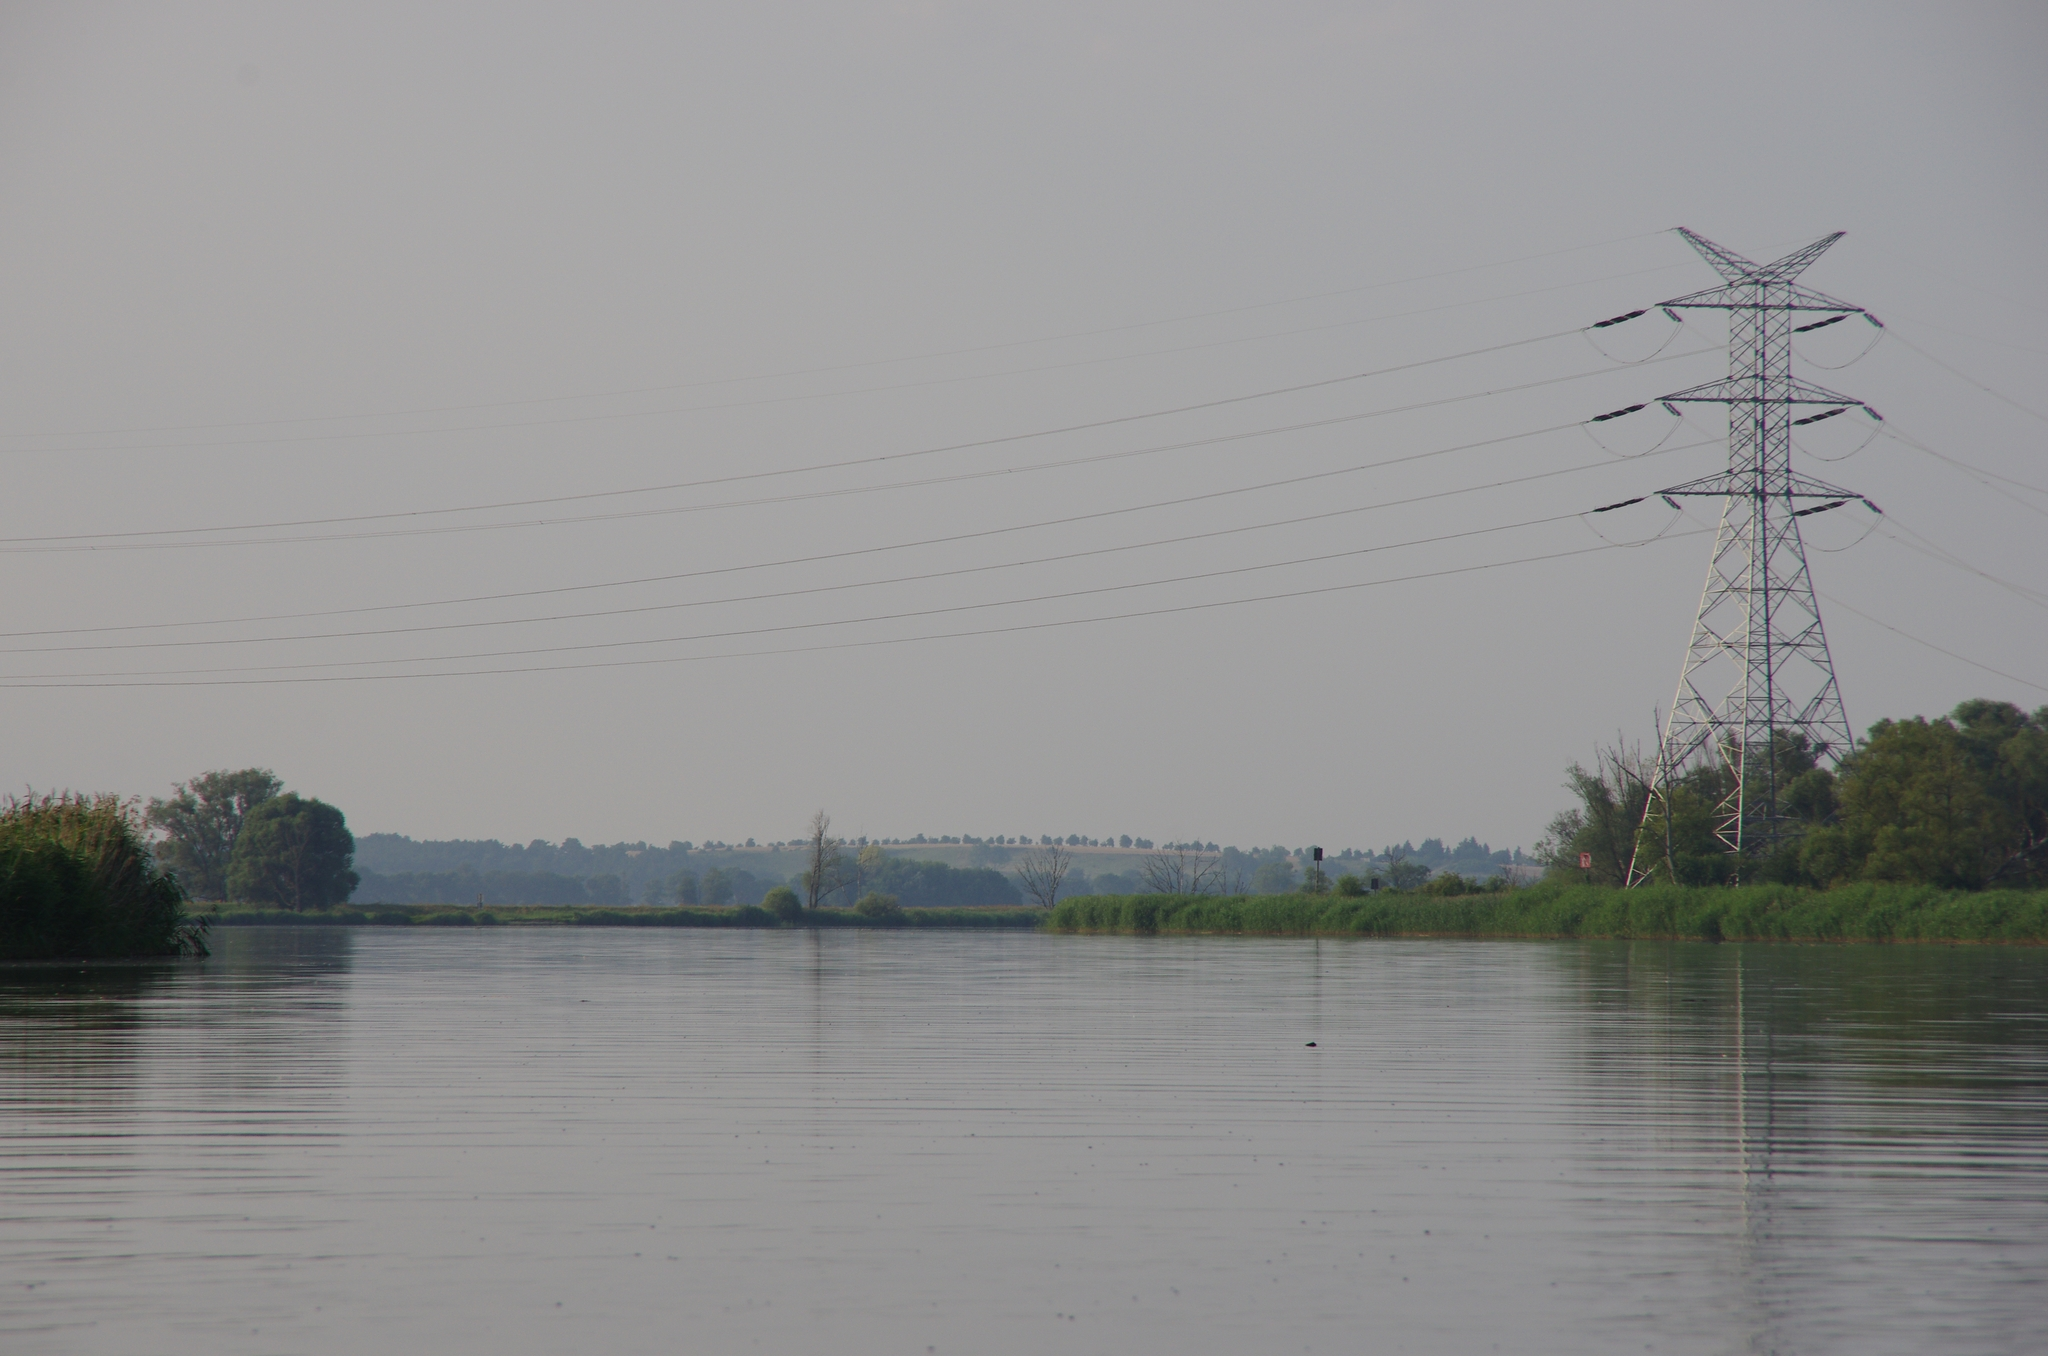 kayaking-odra-east-and-west_17-43-43_25-07-2016